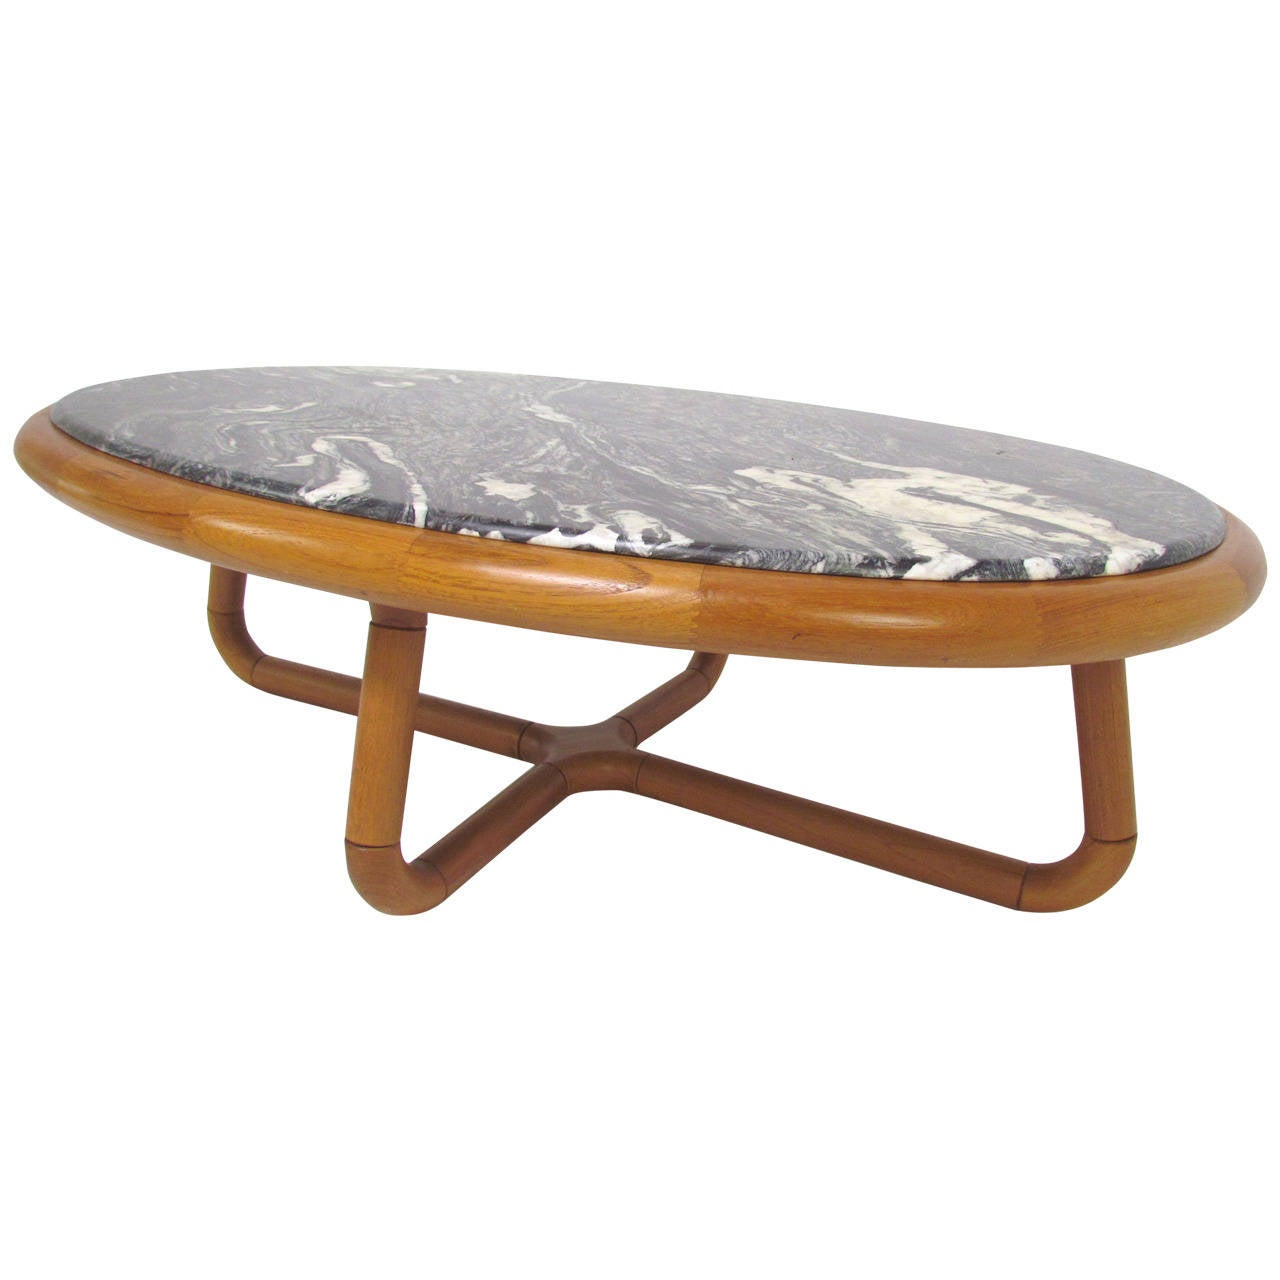 sculptural danish teak coffee table with zebra marble top at 1stdibs. Black Bedroom Furniture Sets. Home Design Ideas